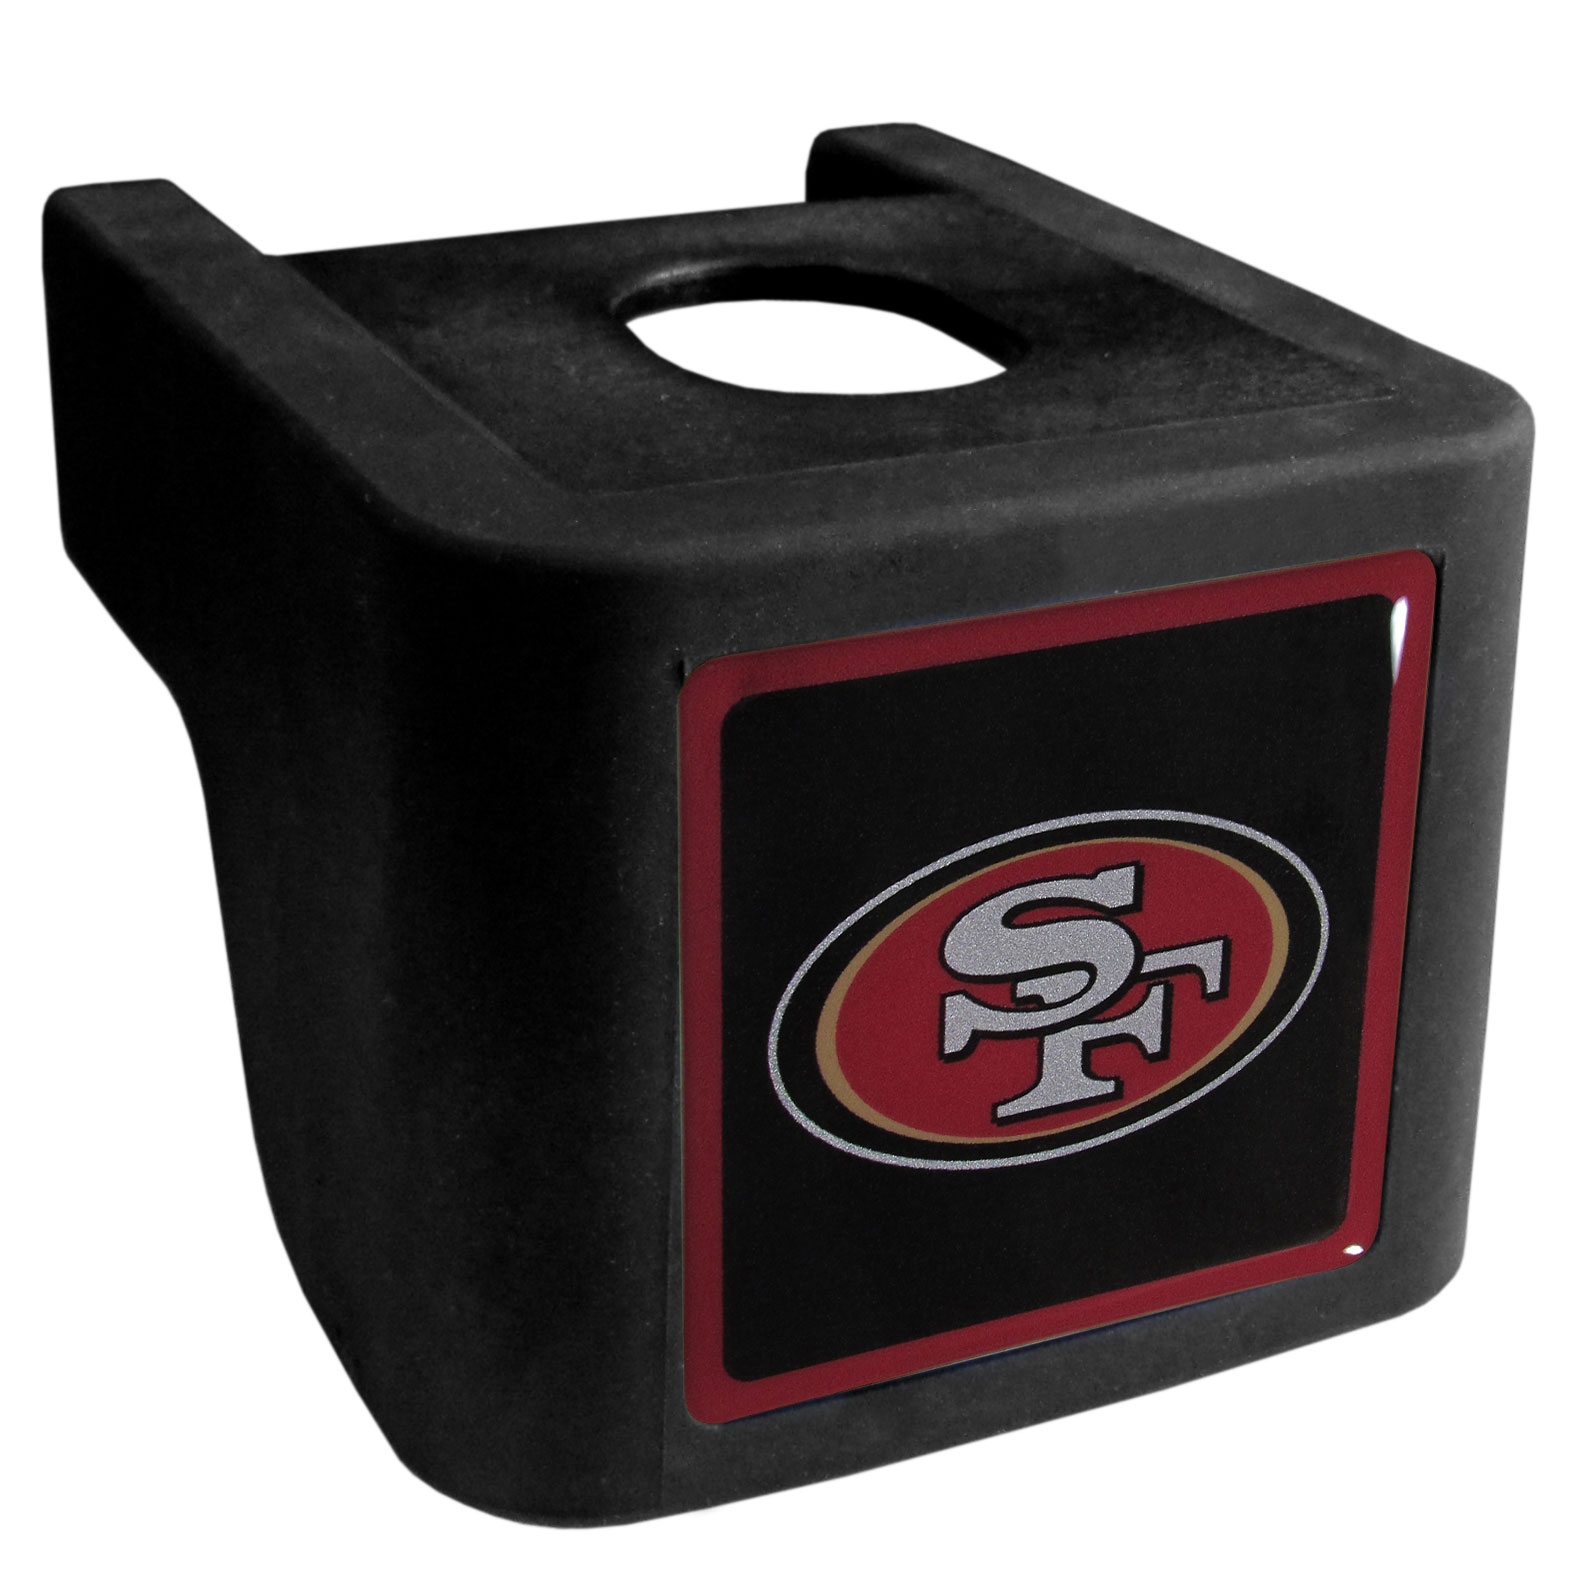 San Francisco 49ers Shin Shield Hitch Cover - This unique hitch cover features a large San Francisco 49ers logo. If you have ever hooked up a trailer or boat your have probably smashed your shins on the ball hitch a few times. This revolutionary shin shield hitch cover provides your much abused shins with the protection they deserve! The tough rubber hitch is rated to work with Class V hitch receivers hauling up to 17,000 gross trailer weight and 1,700 tongue weight allowing you to leave it on while hauling.